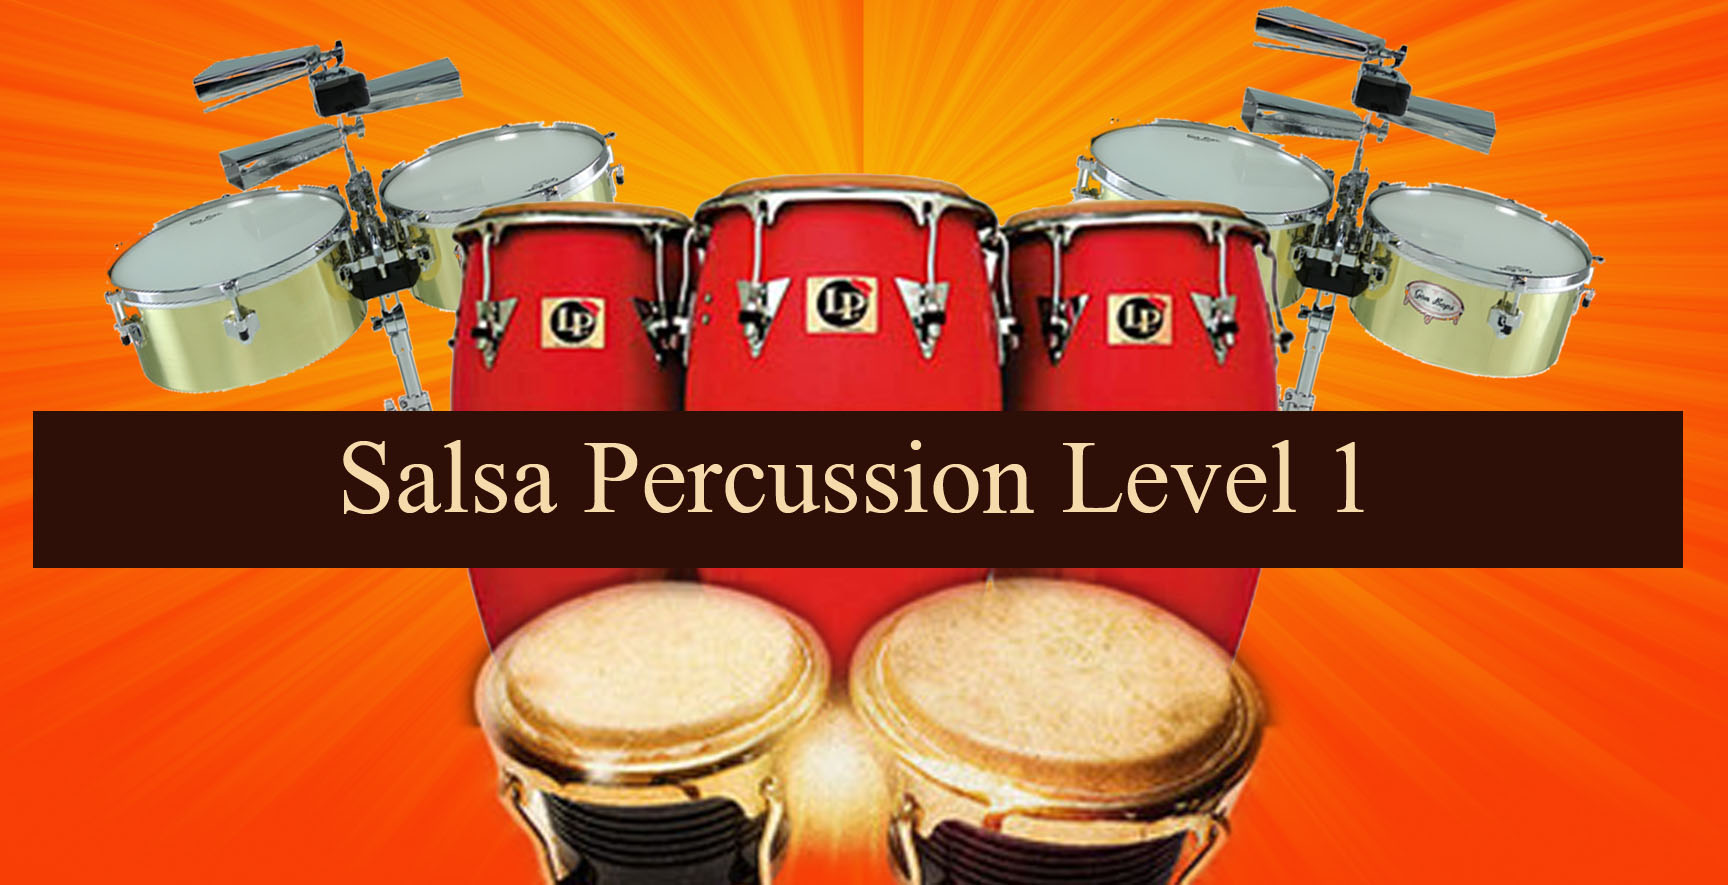 Salsa Percussion Level 1